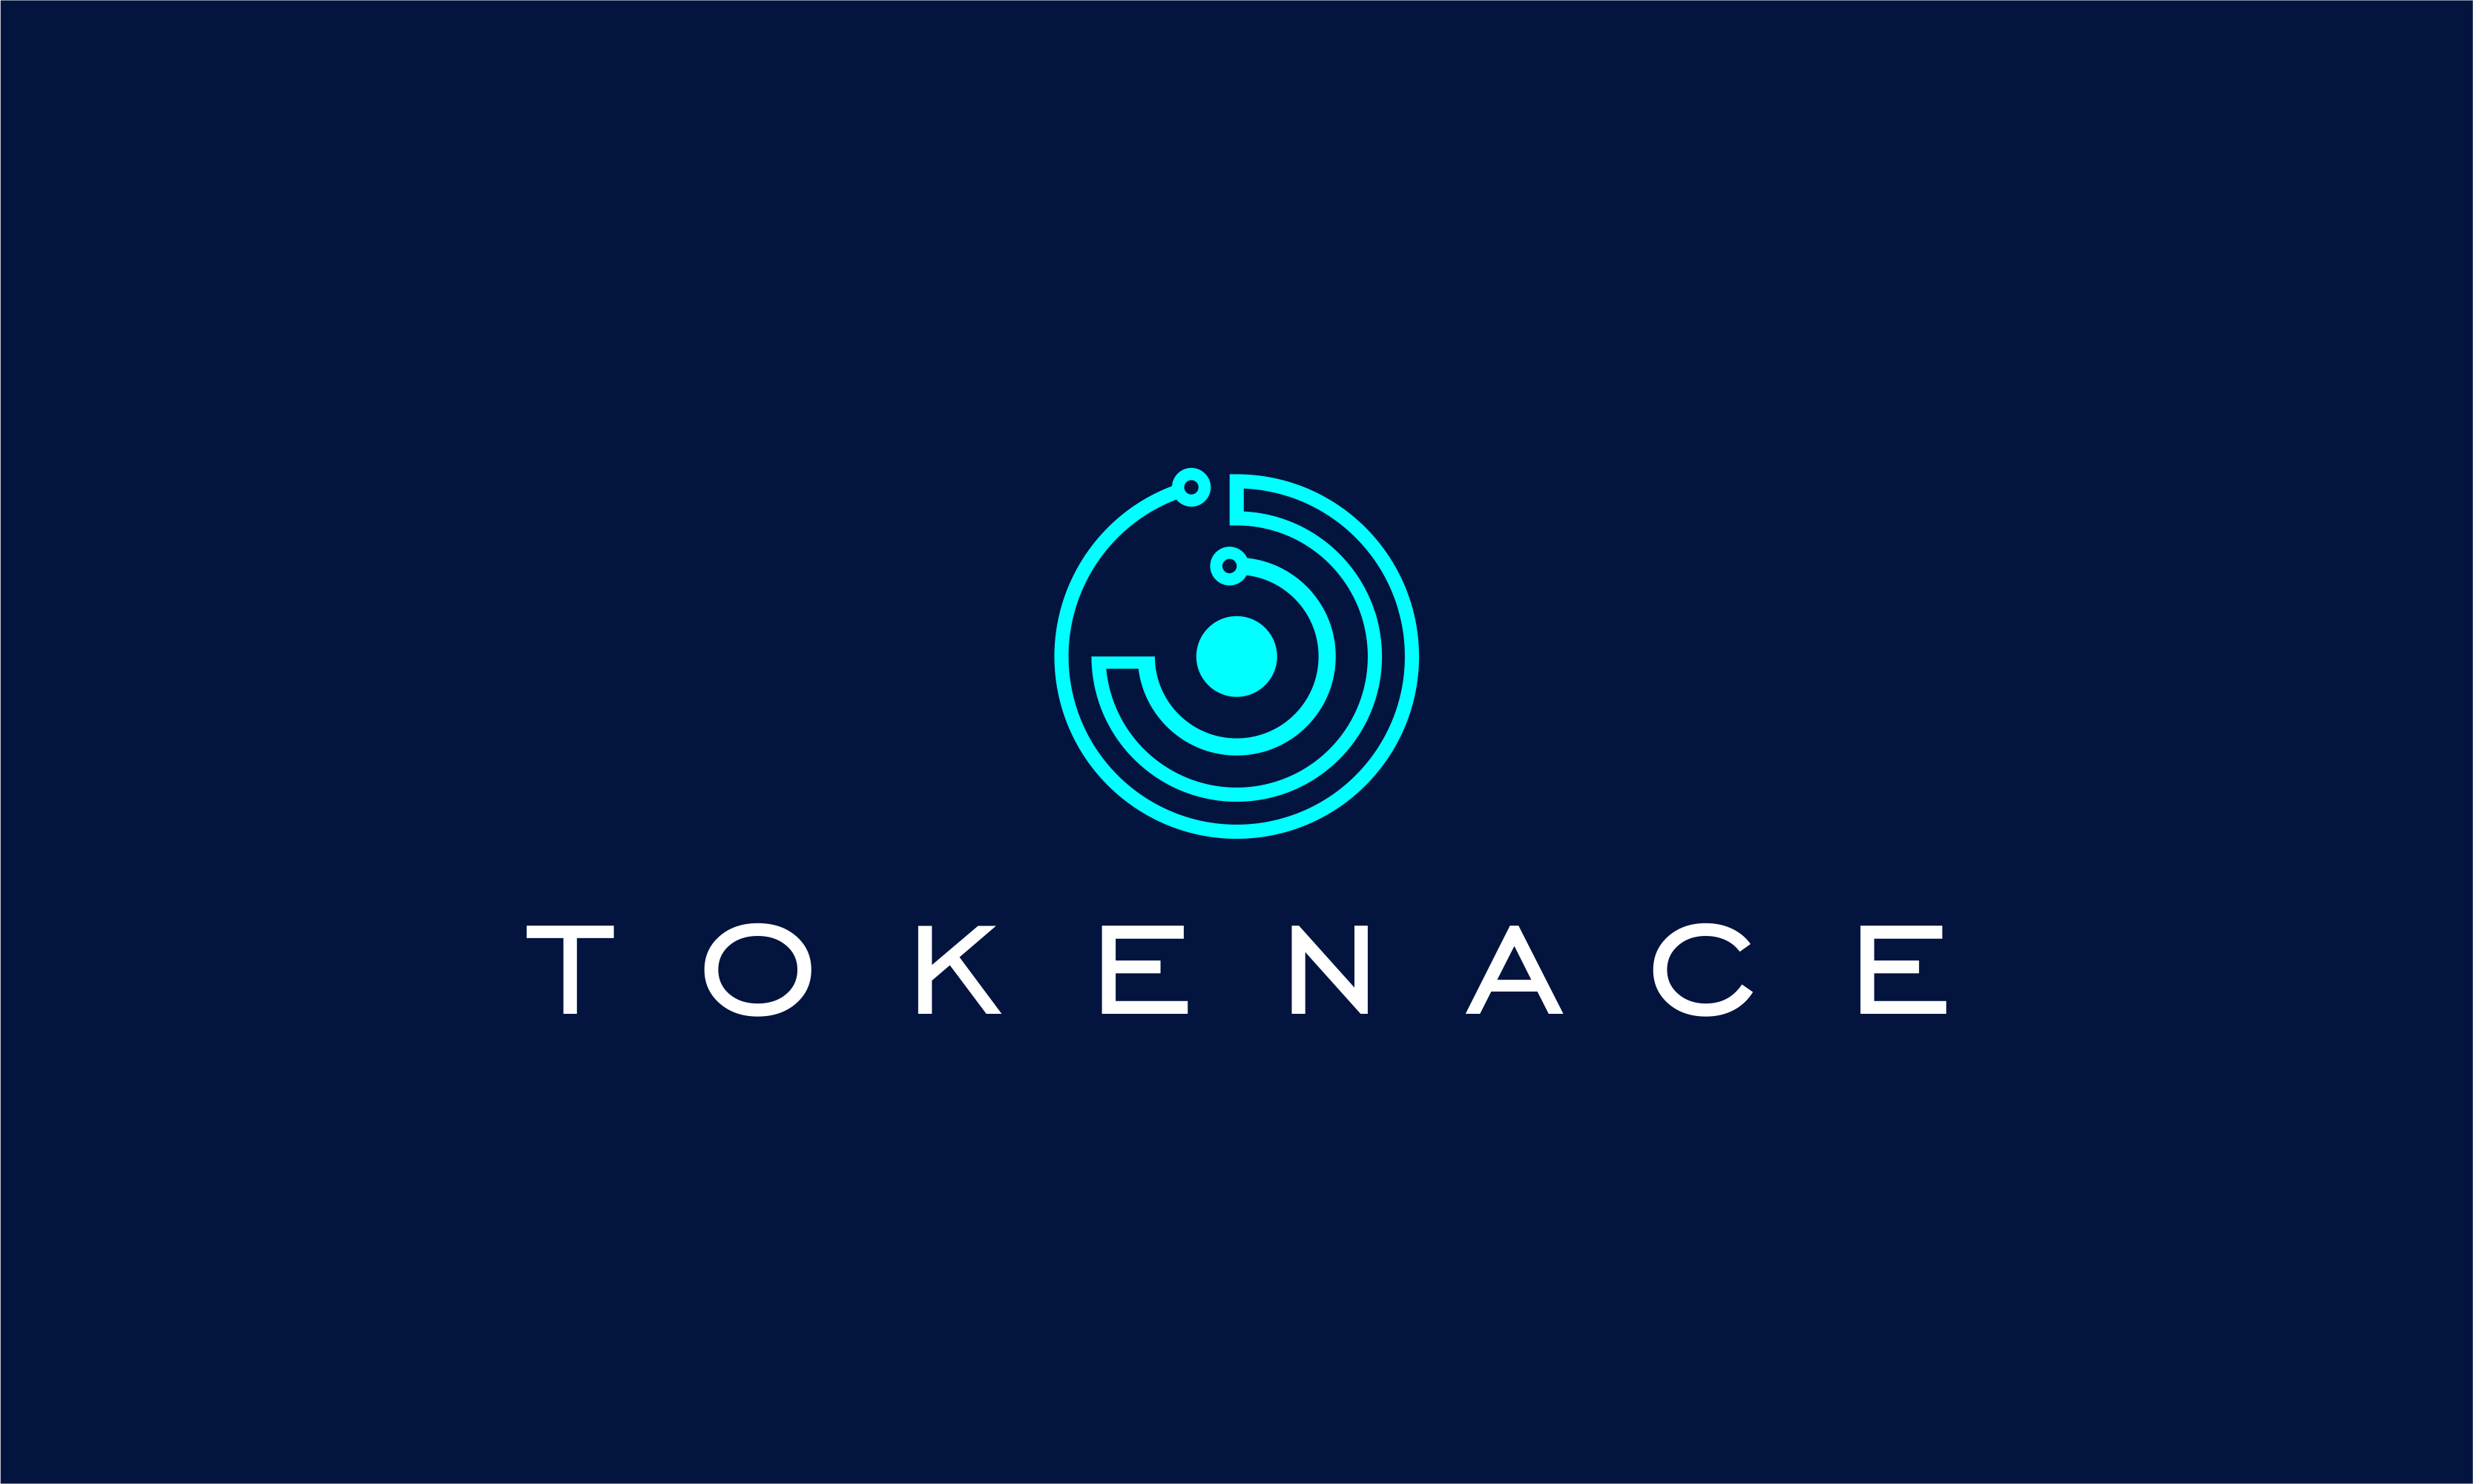 Tokenace